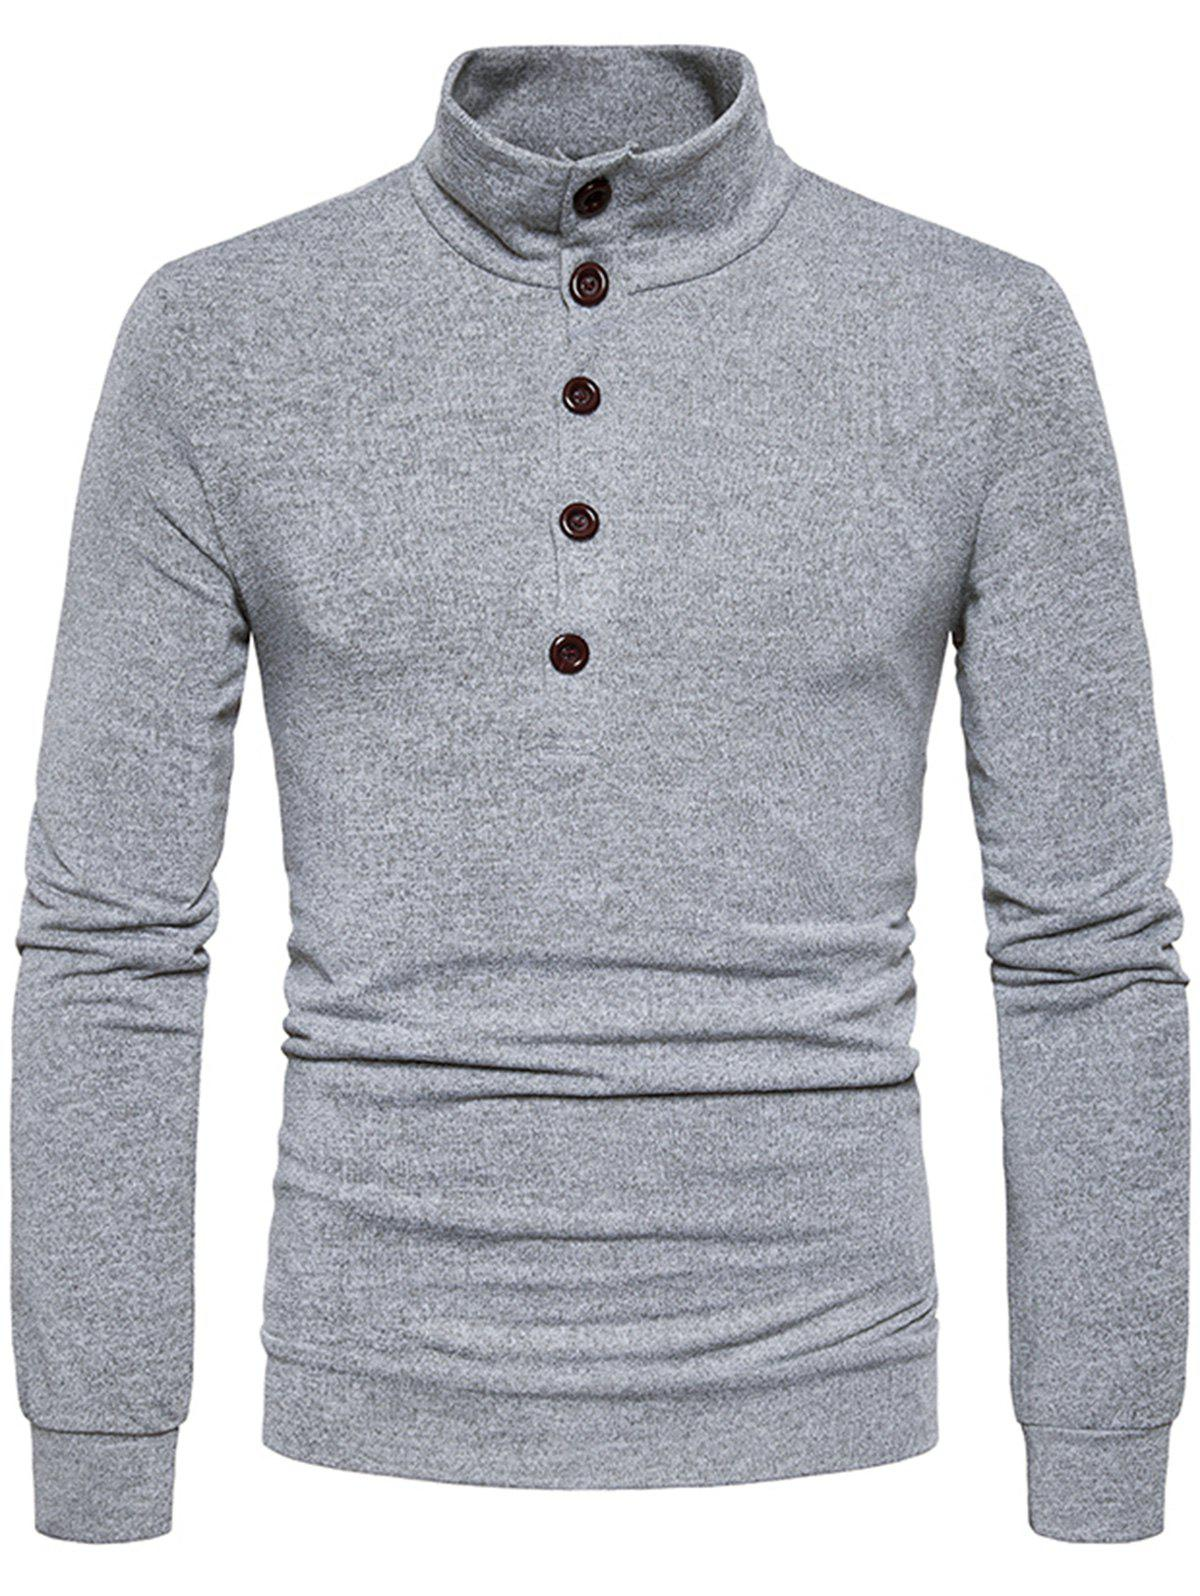 Stand Collar Buttons Long Sleeve Knitted Sweater 231126702